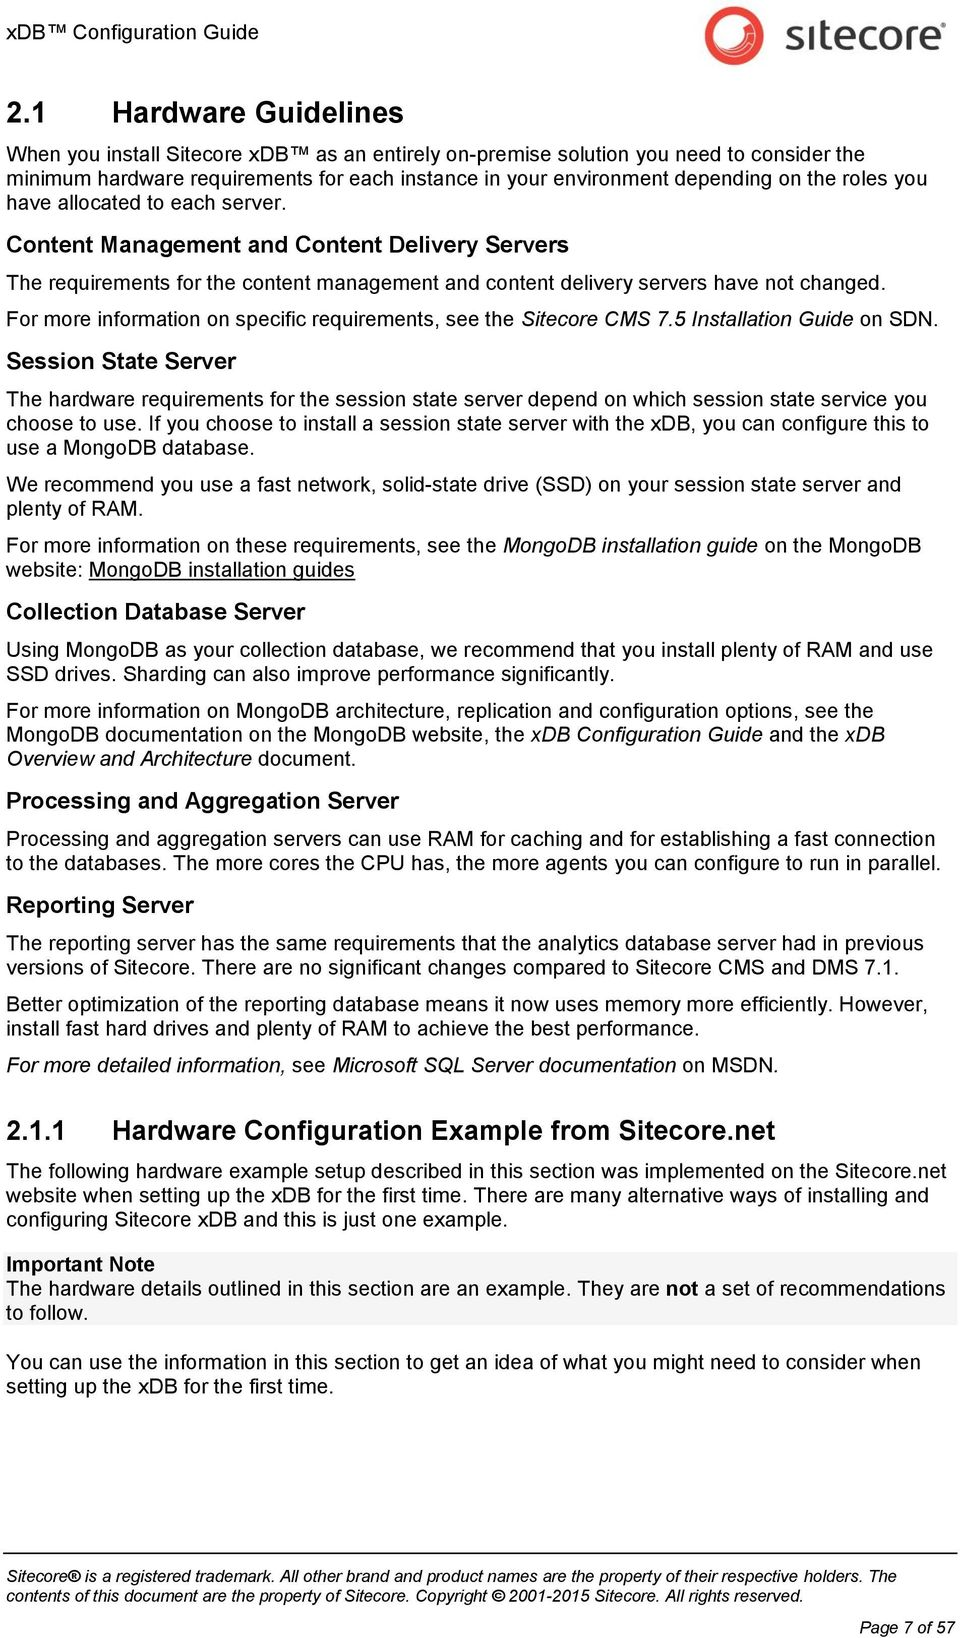 allcated t each server. Cntent Management and Cntent Delivery Servers The requirements fr the cntent management and cntent delivery servers have nt changed.